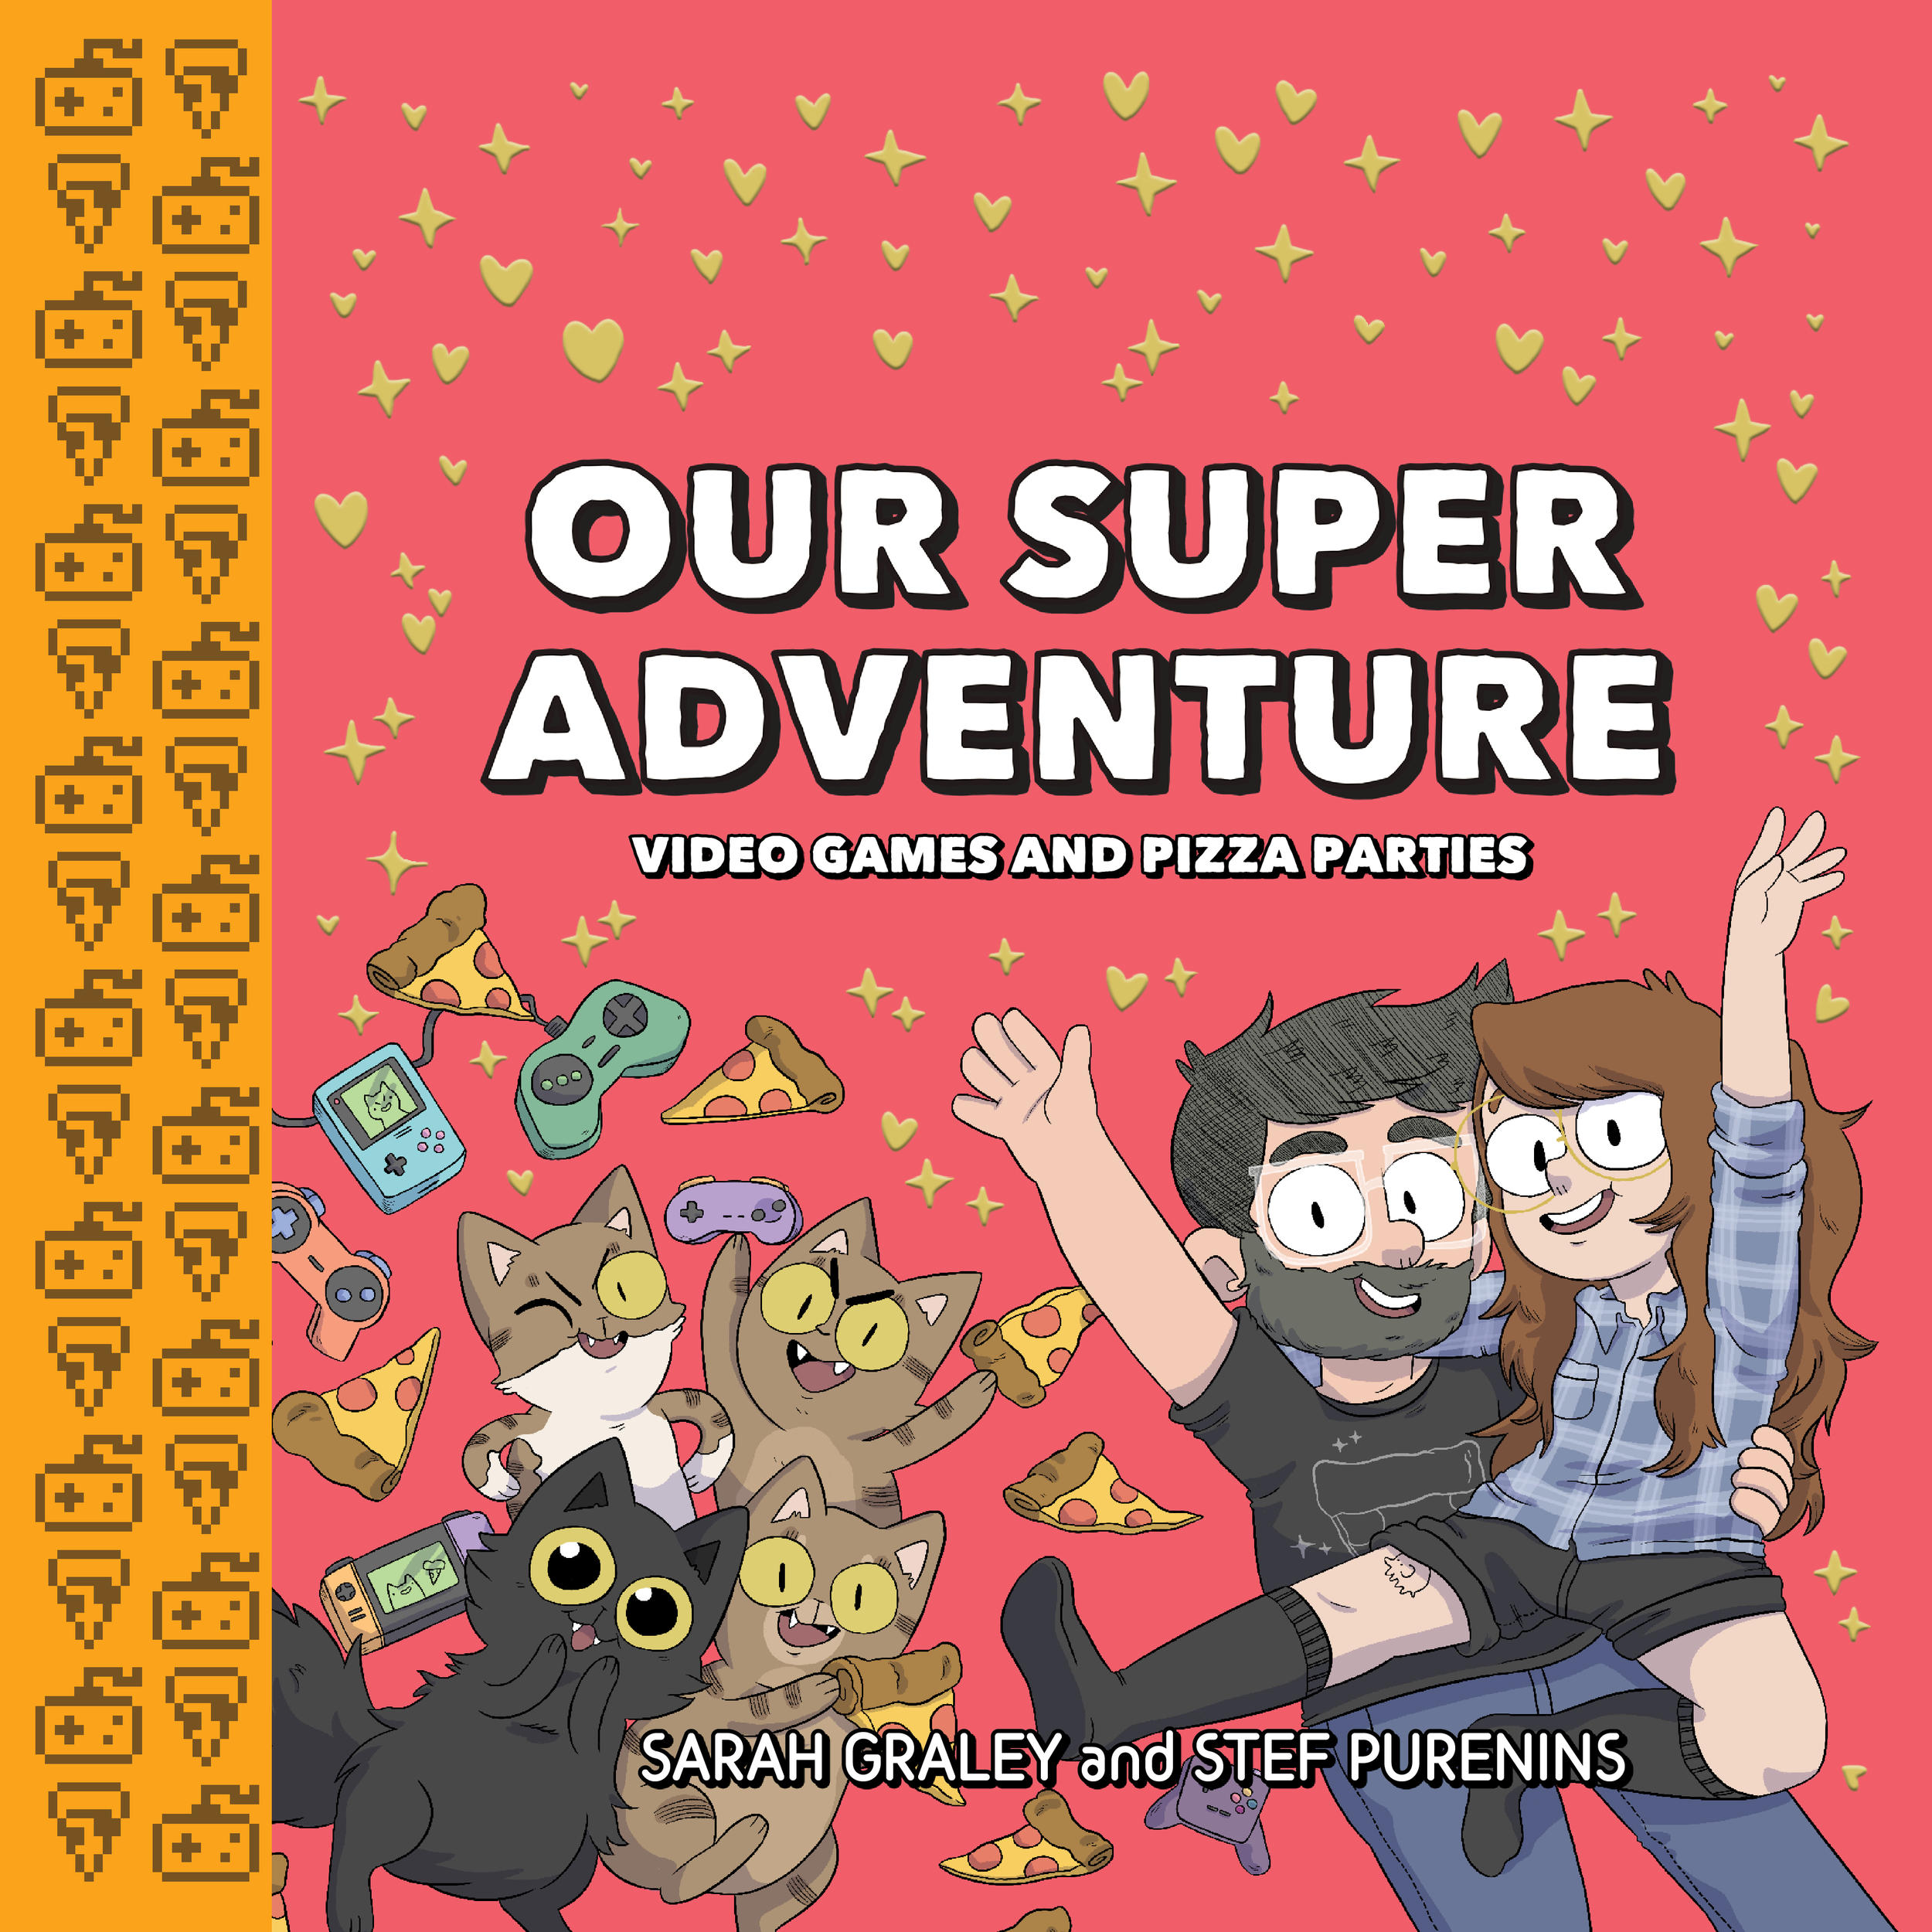 Video Games and Pizza Parties (Vol. 2)   New Oni Press Edition  Released July 16th 2019